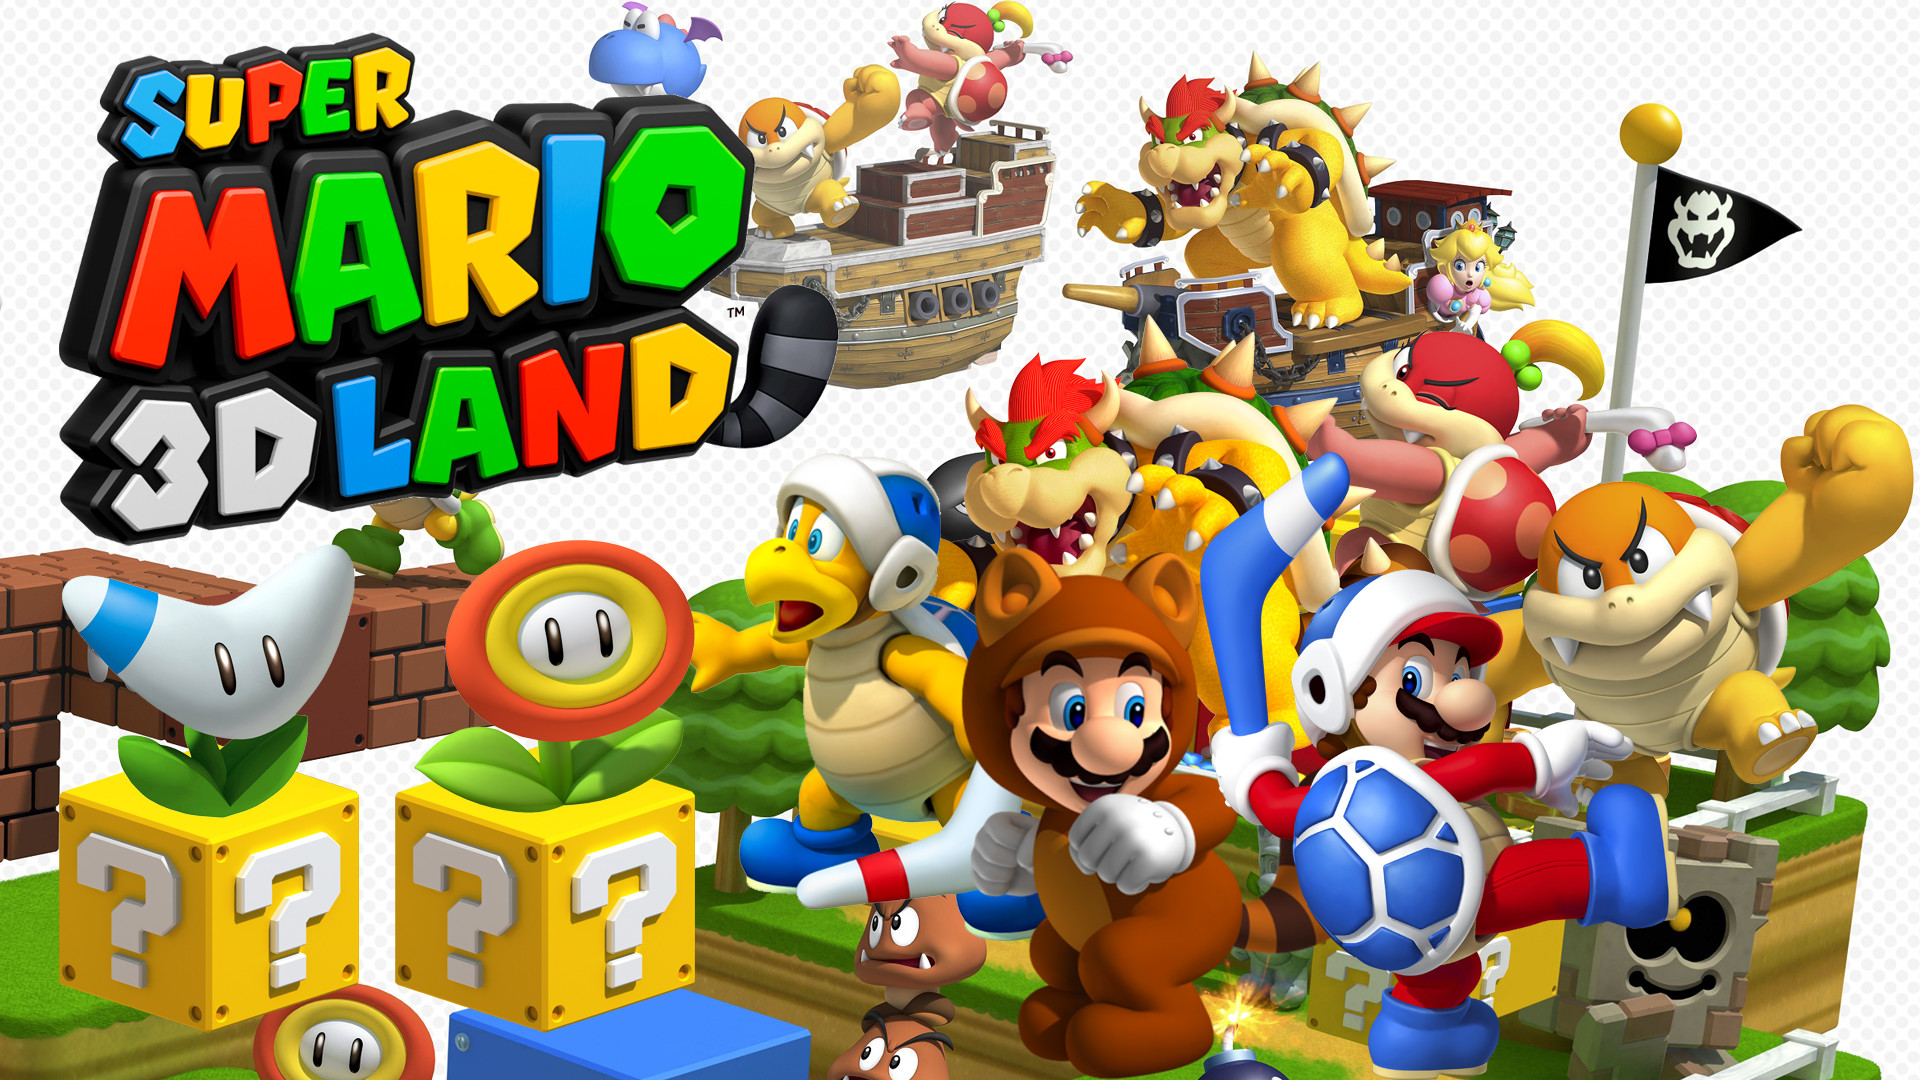 1920x1080 super mario 3d land wallpaper 5035